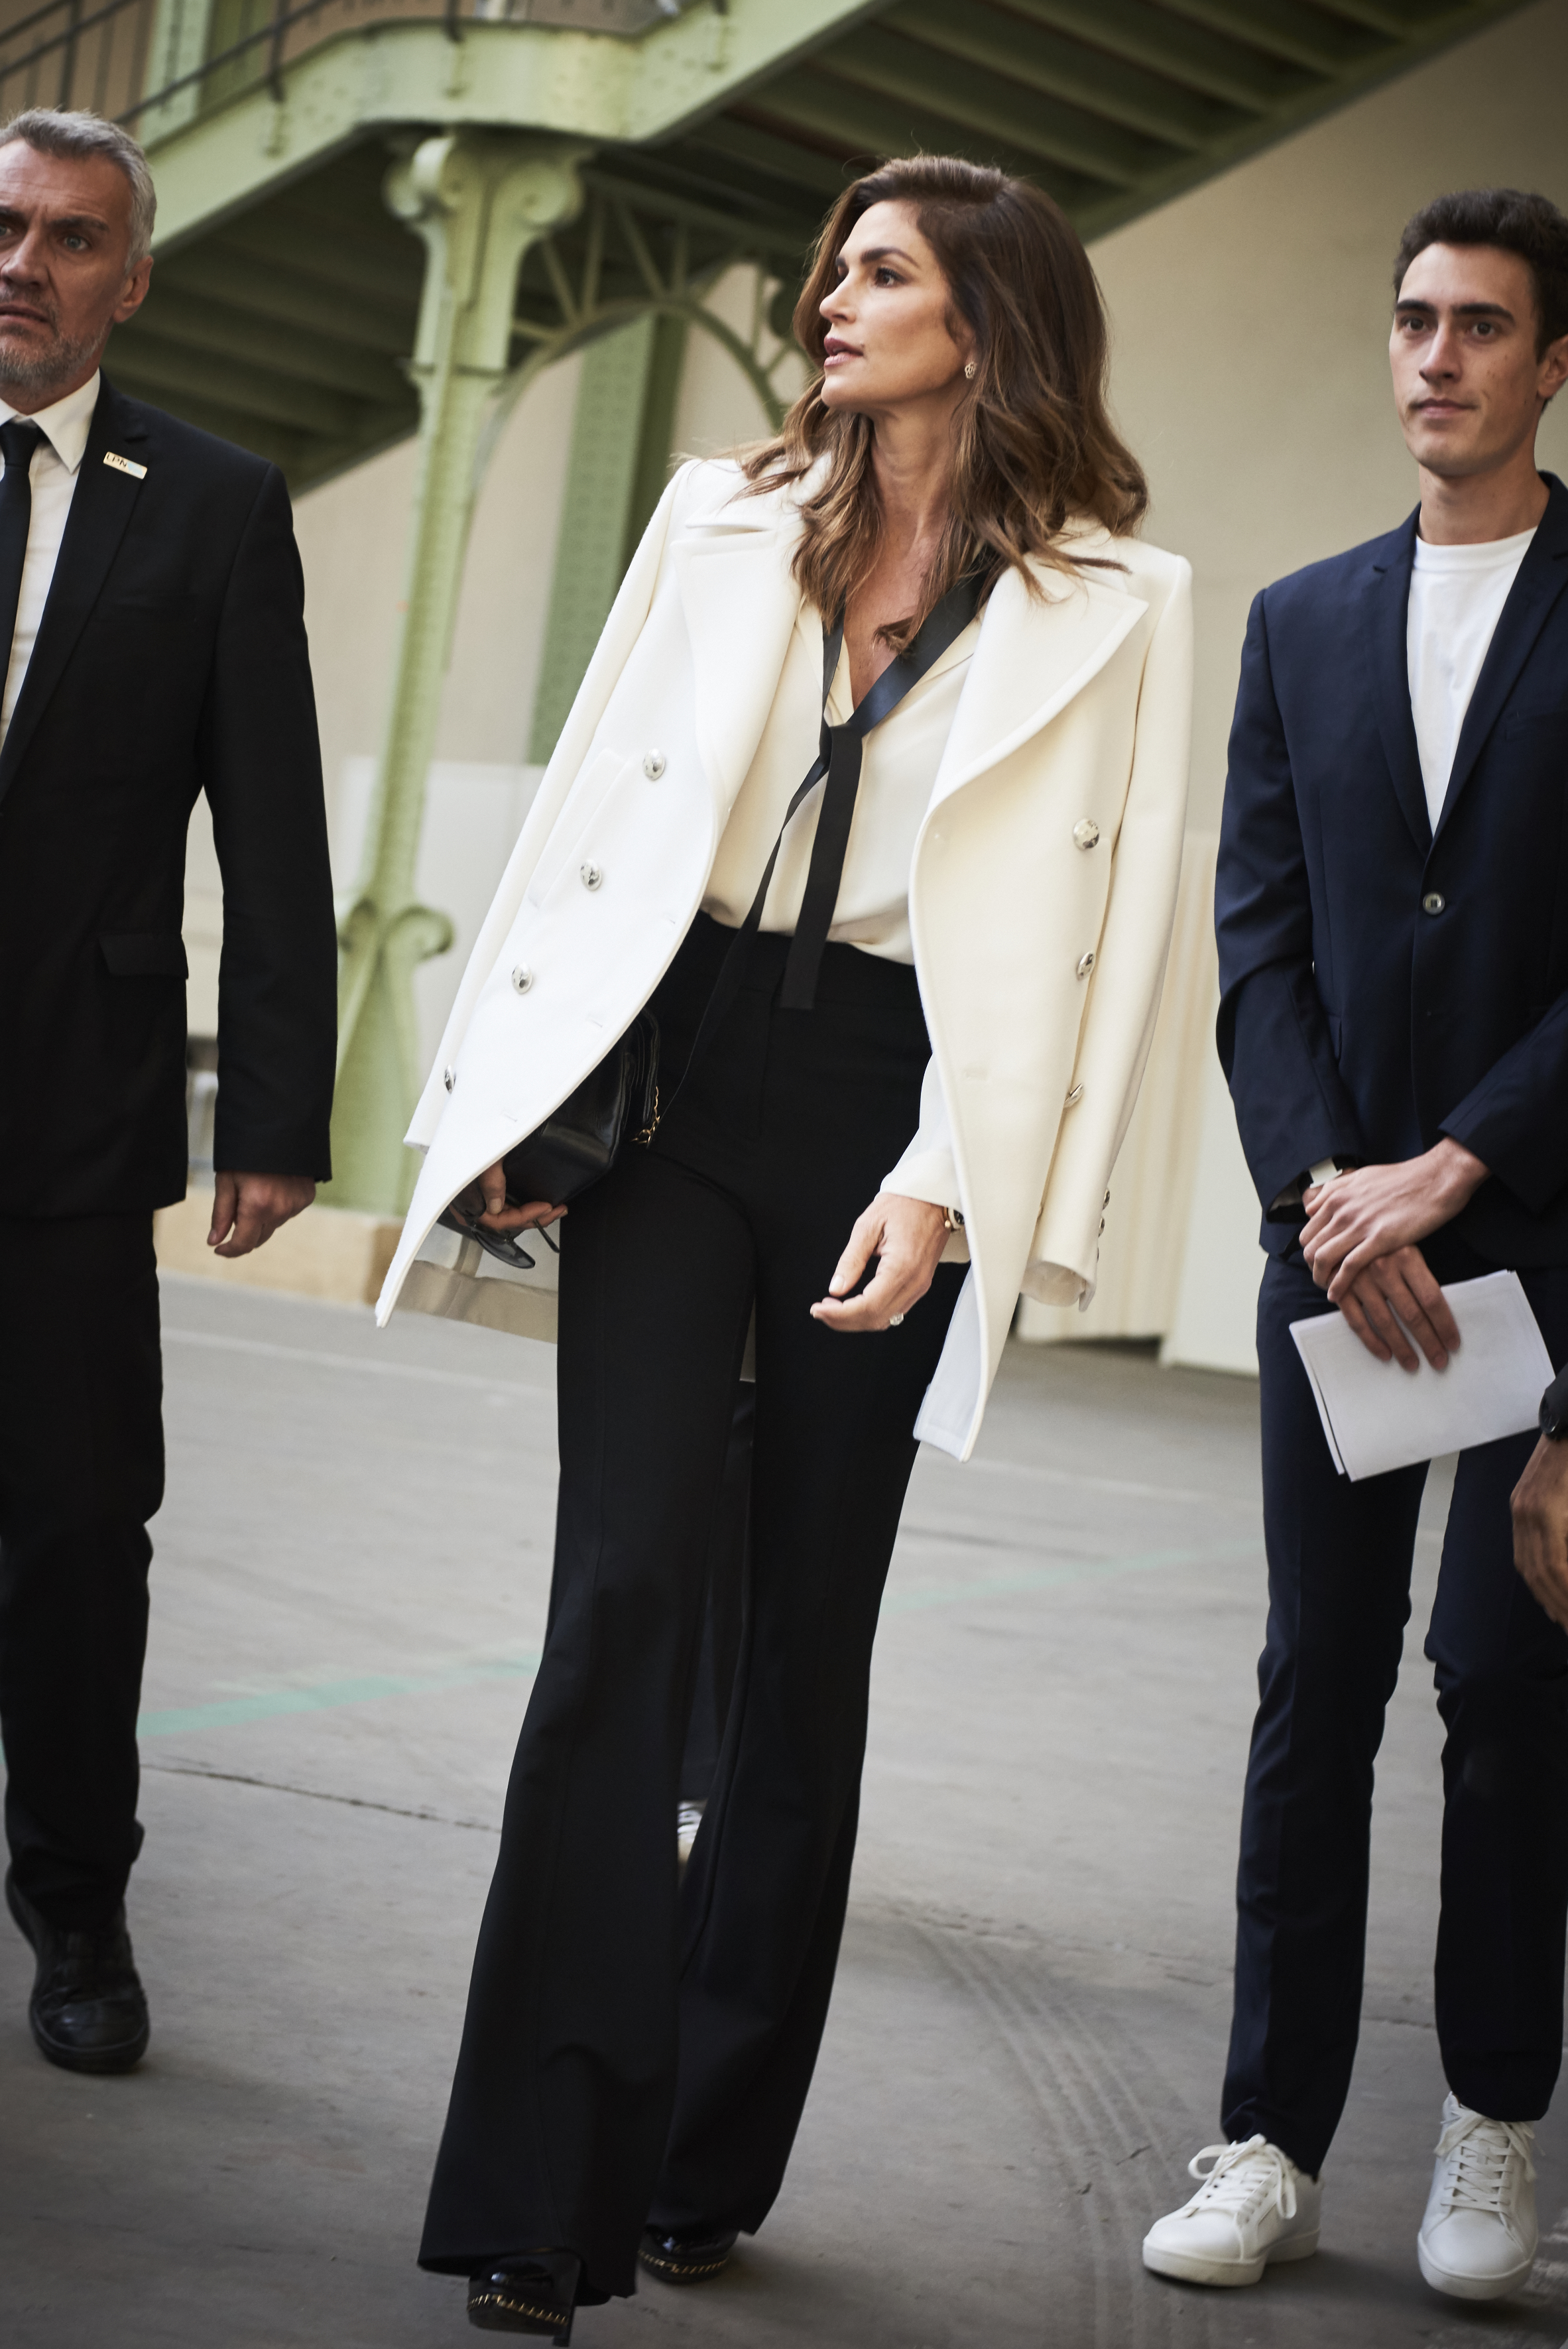 18_Cindy CRAWFORD_Spring-Summer 2018 Ready-to-Wear Collection.jpg